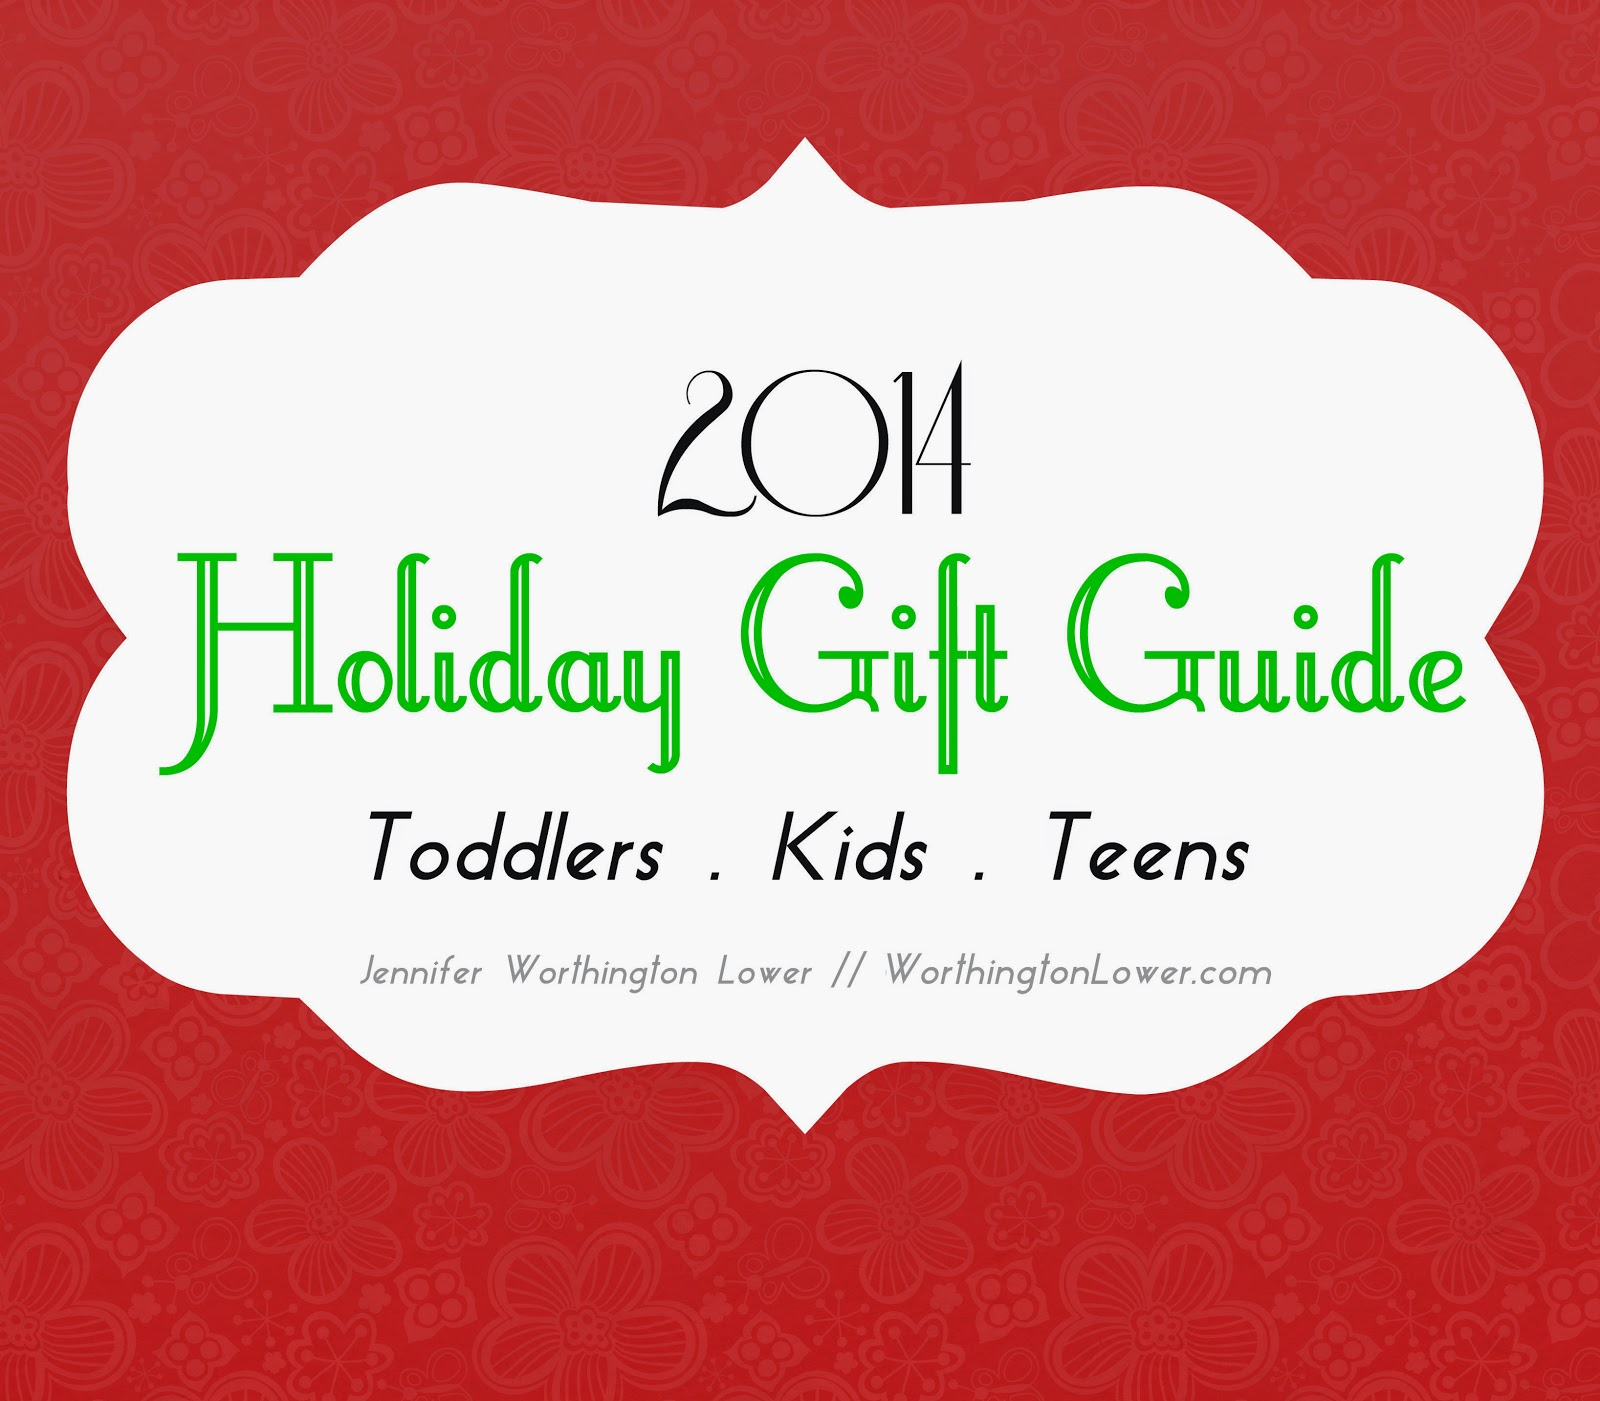 2014 Holiday Gift Guide for Toddlers, Kids and Teens